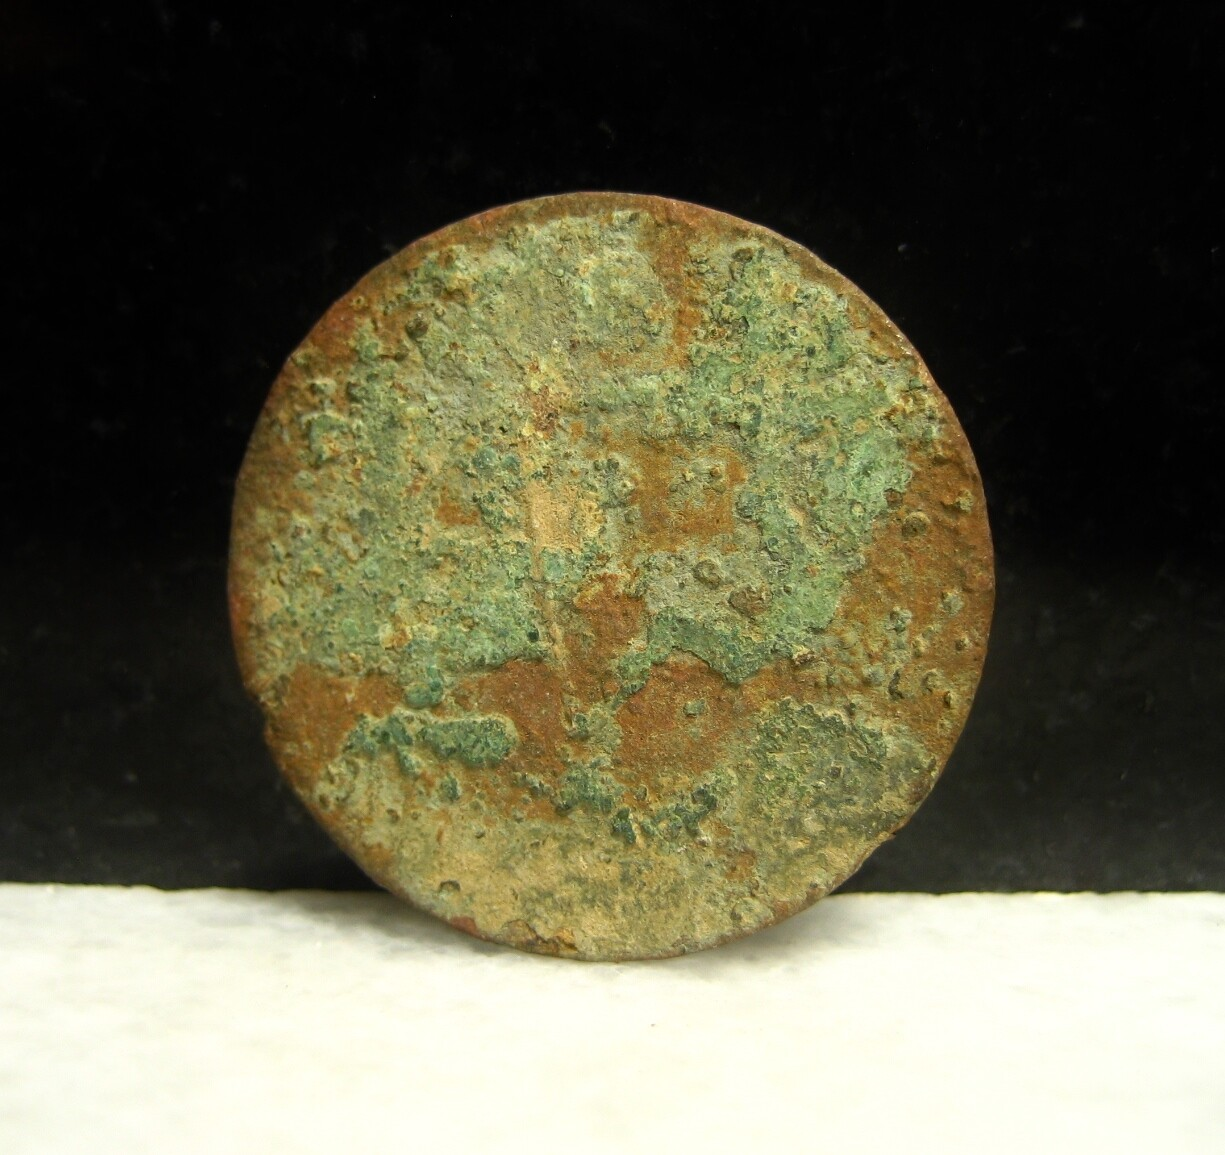 JUST ADDED ON 9/12 - DUNKER CHURCH / THE BATTLE OF ANTIETAM - Large Flat or Coin Coat Button